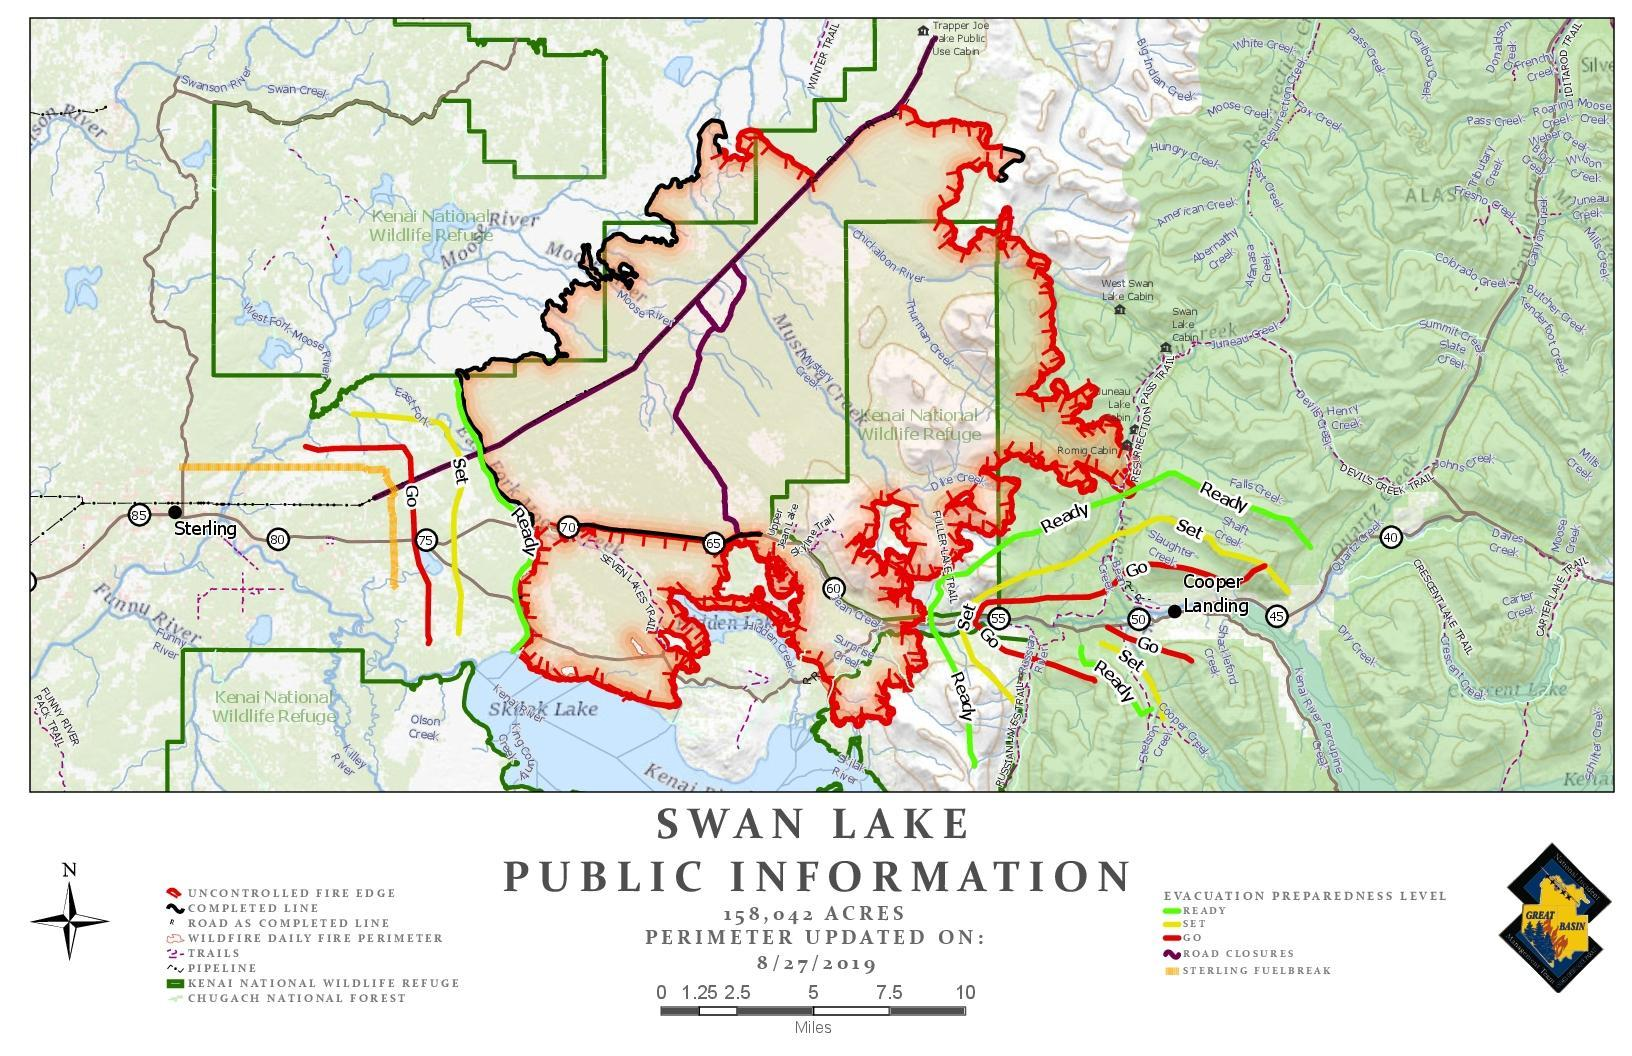 Updated PIO Map Tuesday August 27